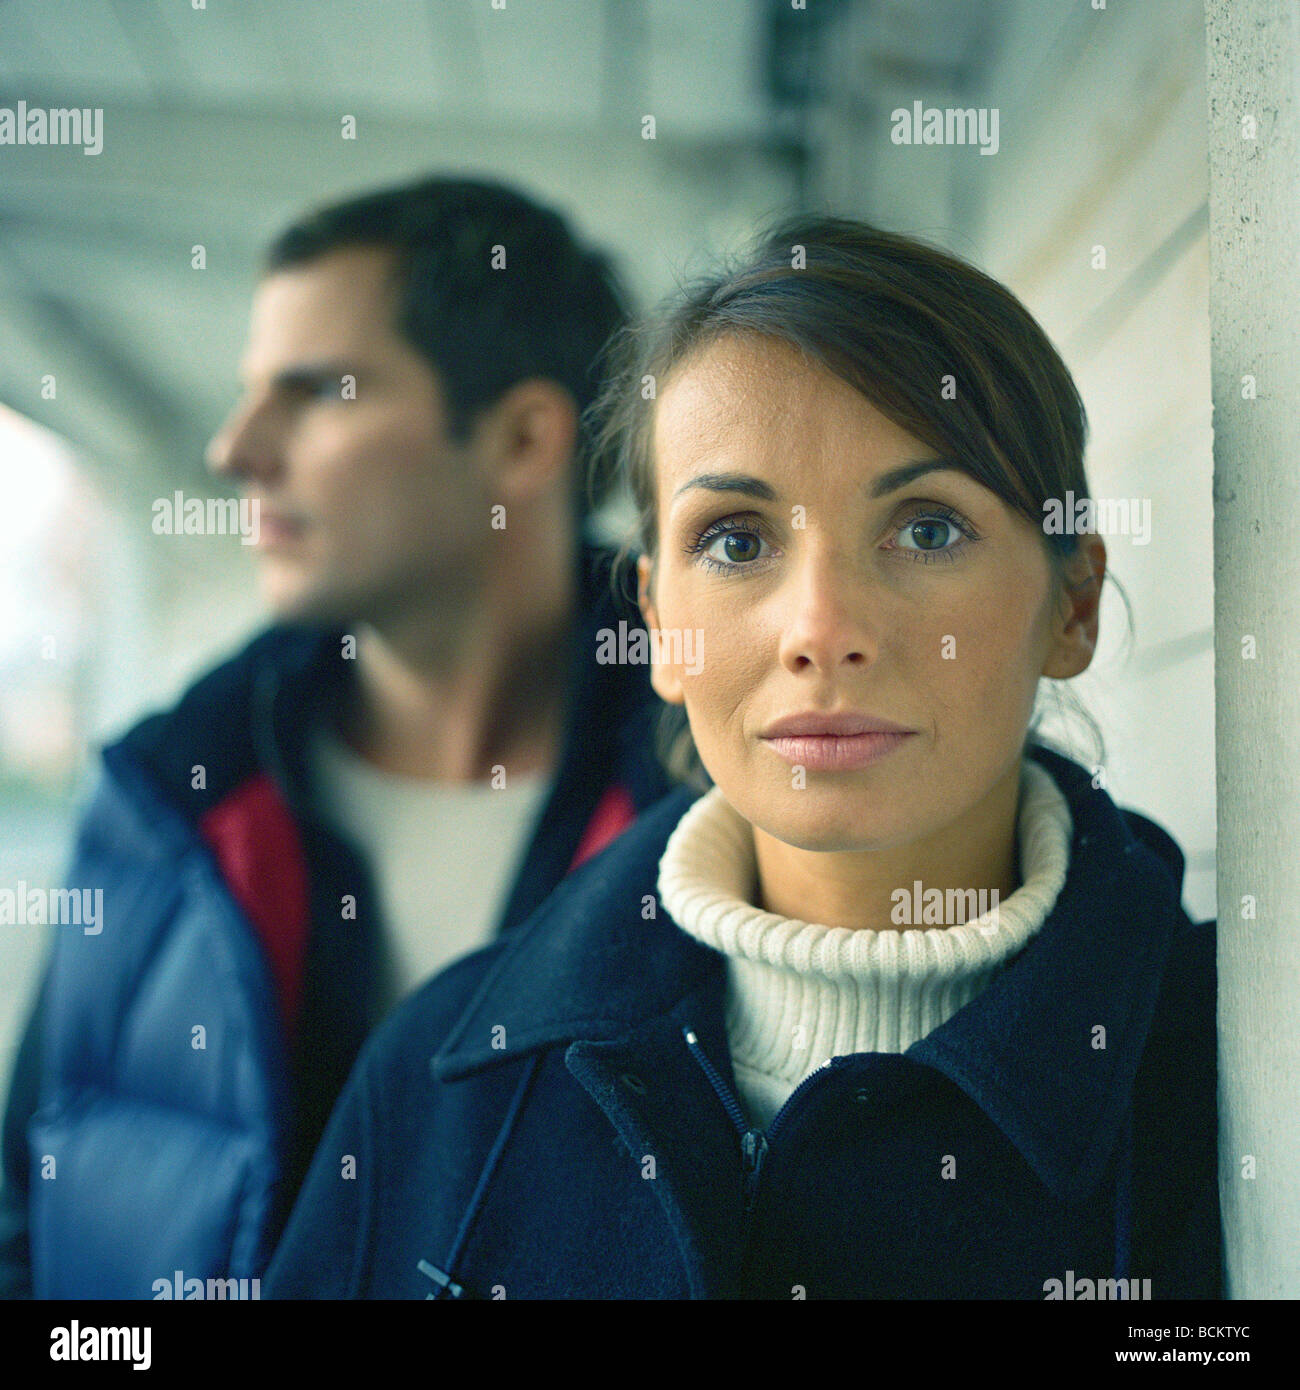 Man and woman standing together in covered walkway - Stock Image